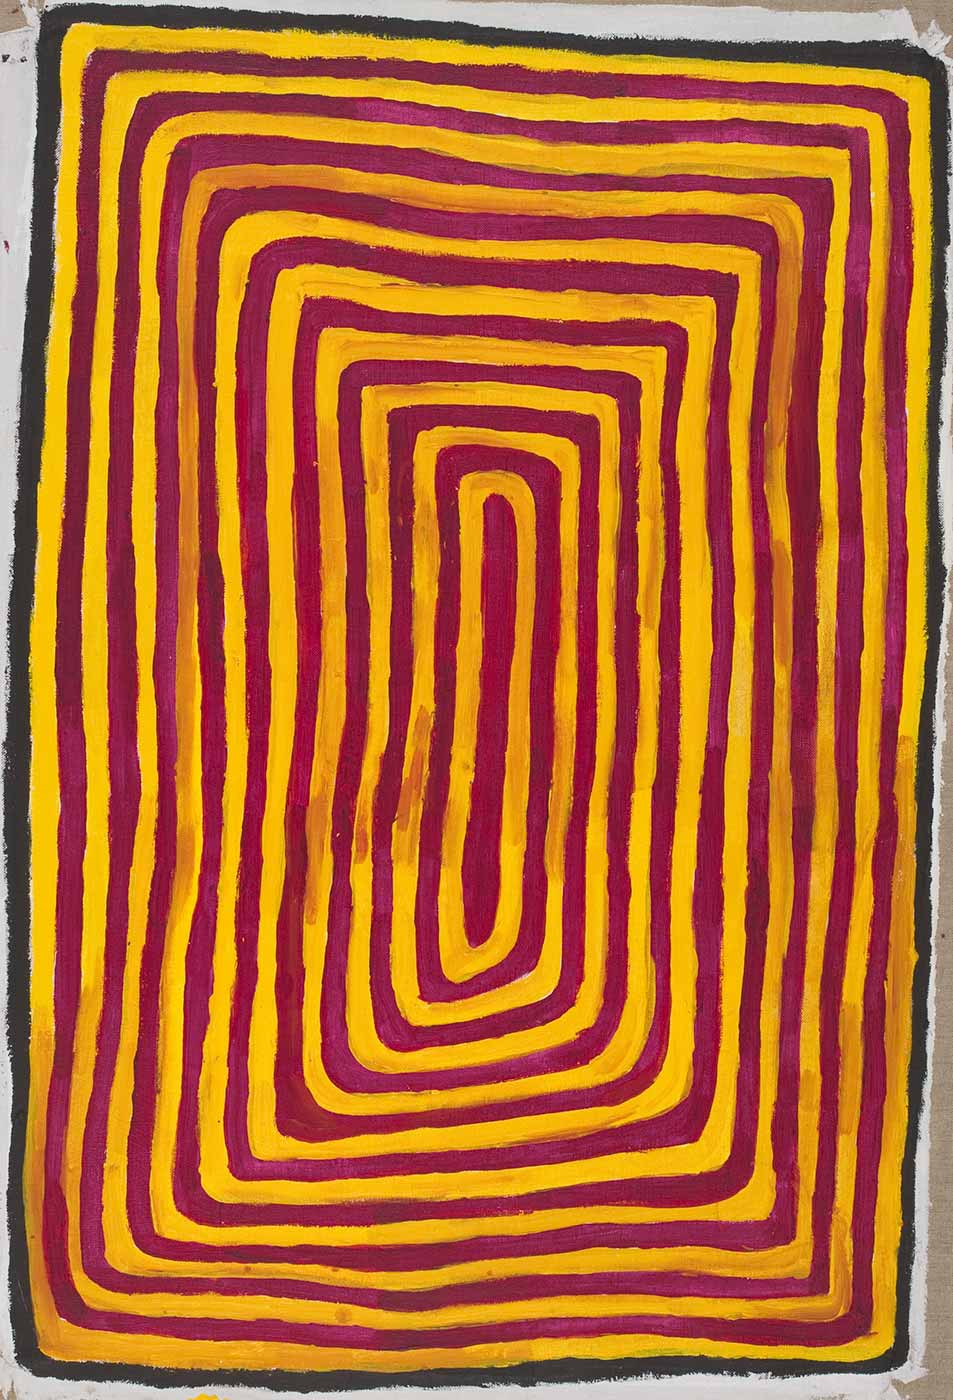 A painting on brown linen of concentric rectangles in yellow and red with a black and white border. - click to view larger image